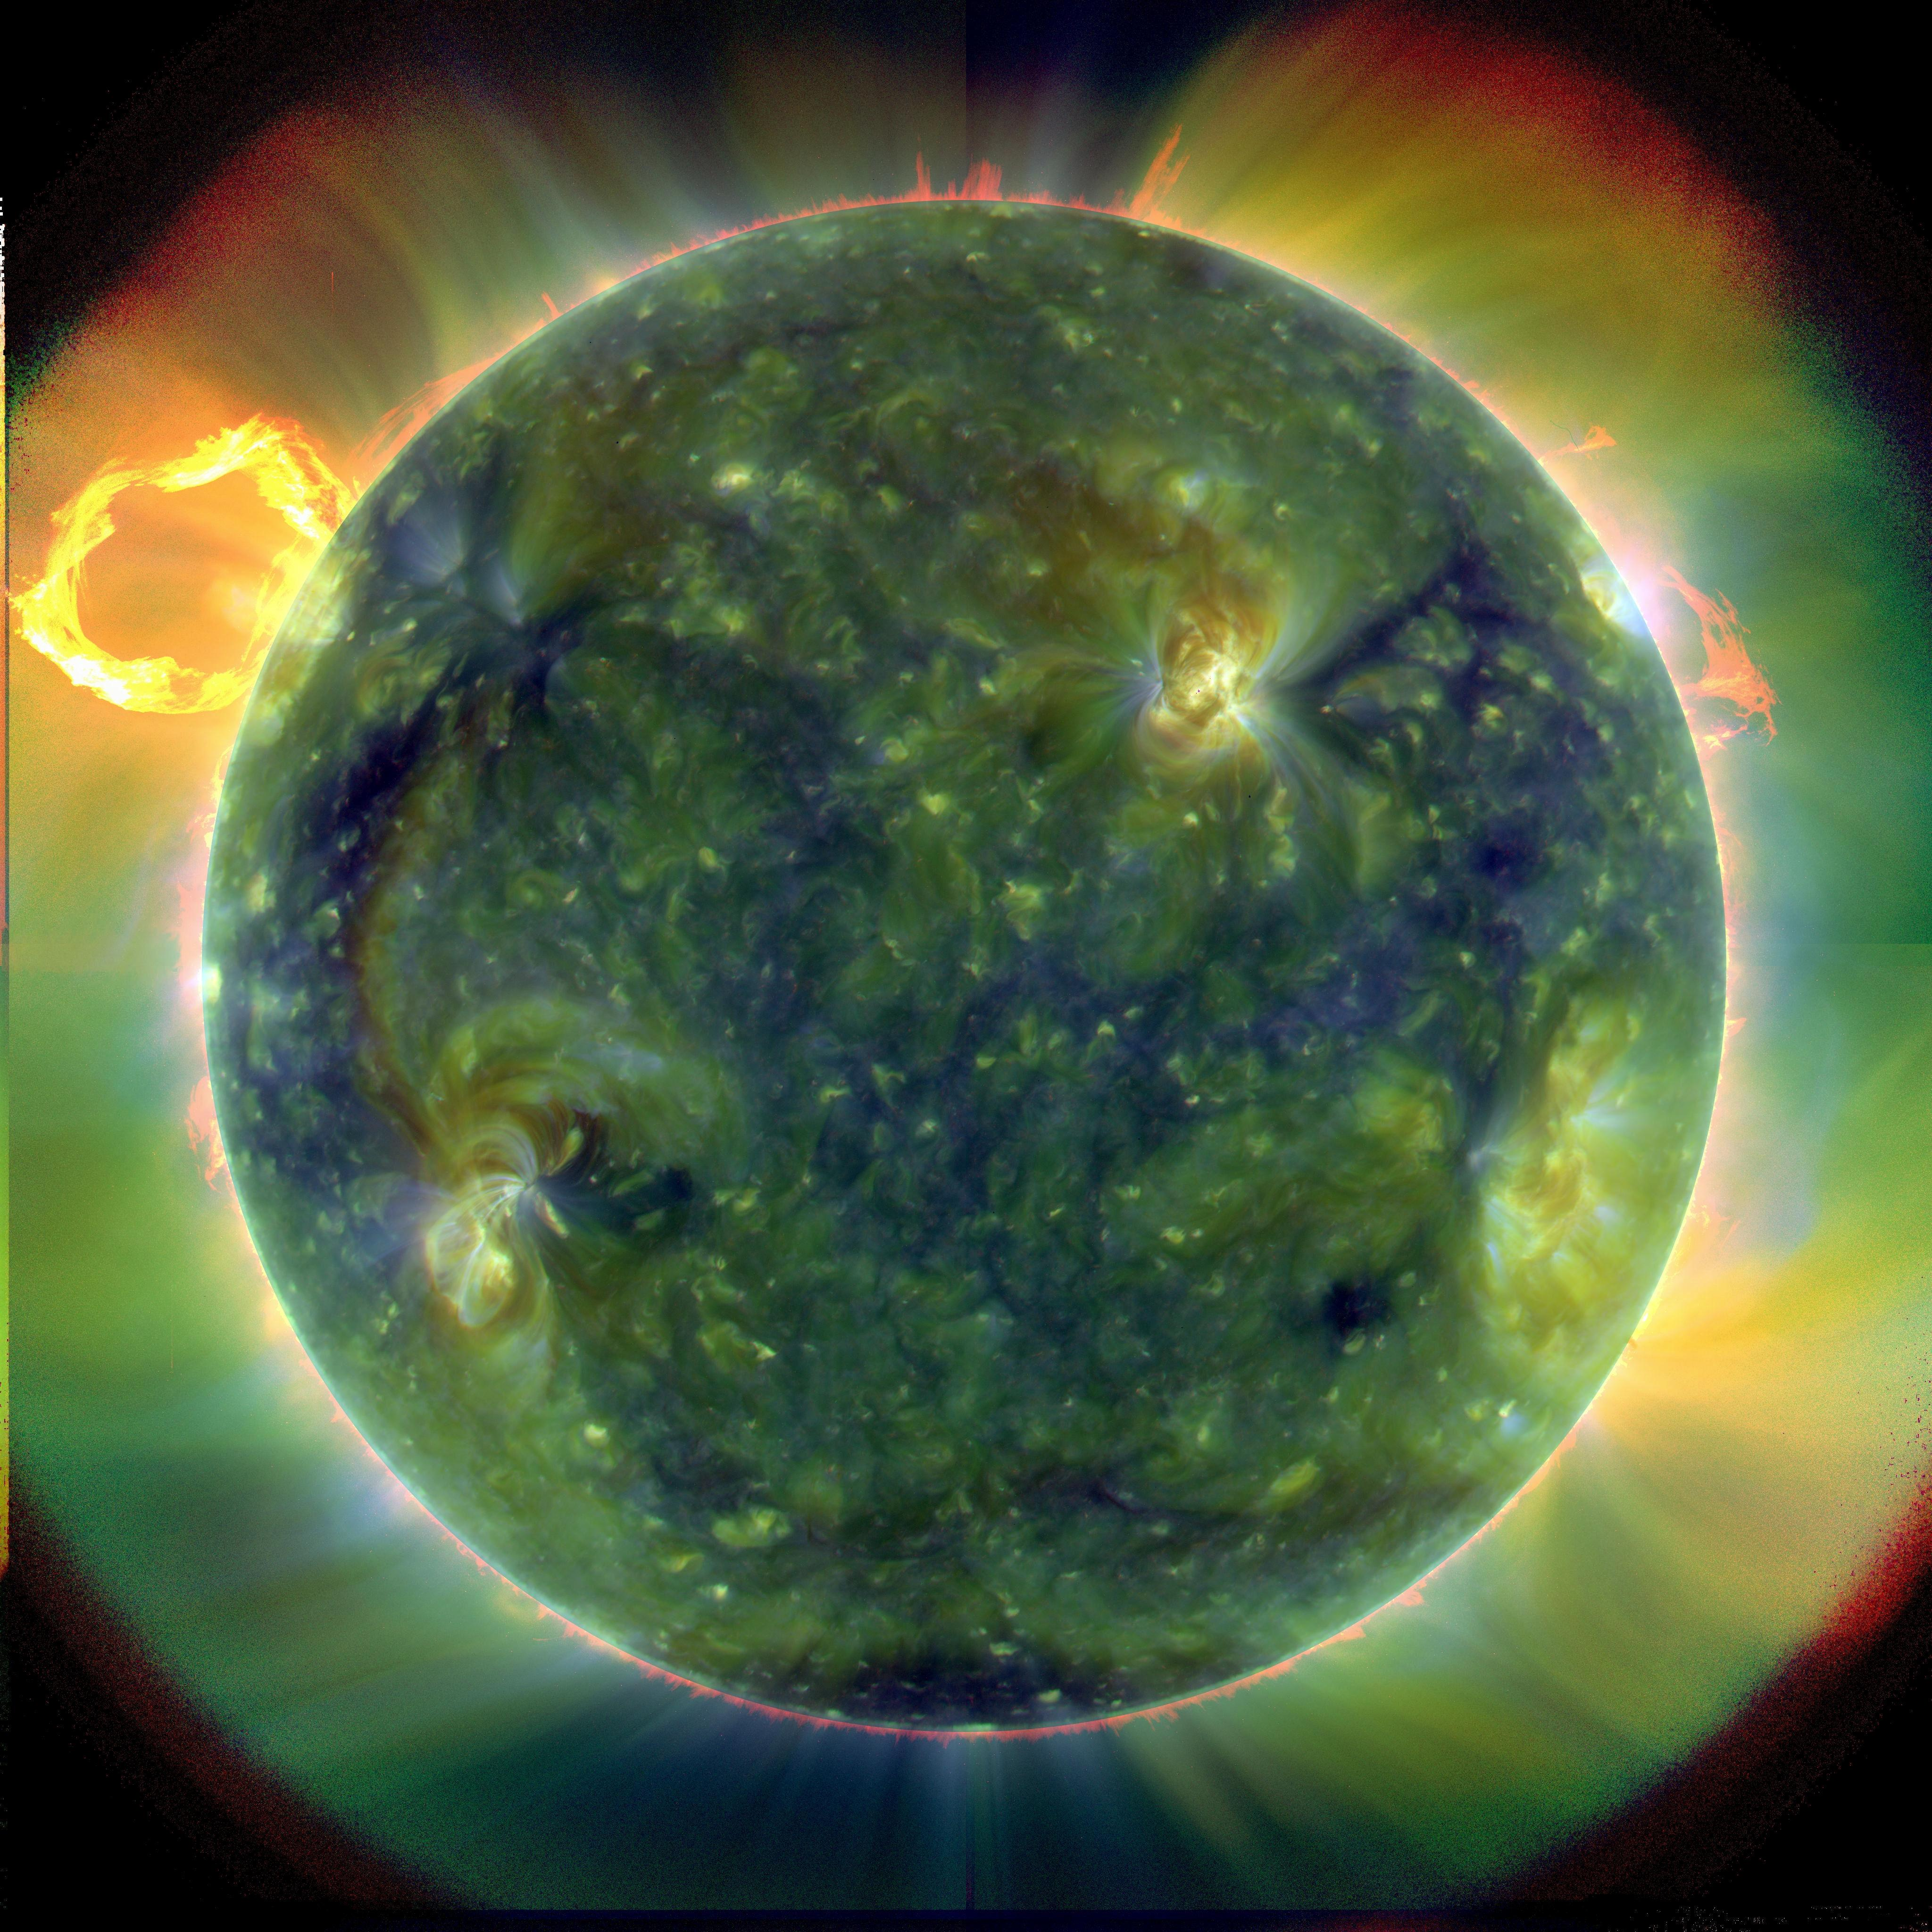 A full-disk multiwavelength extreme ultraviolet image of the sun taken by SDO on March 30, 2010. False colors trace different gas temperatures. From NASA